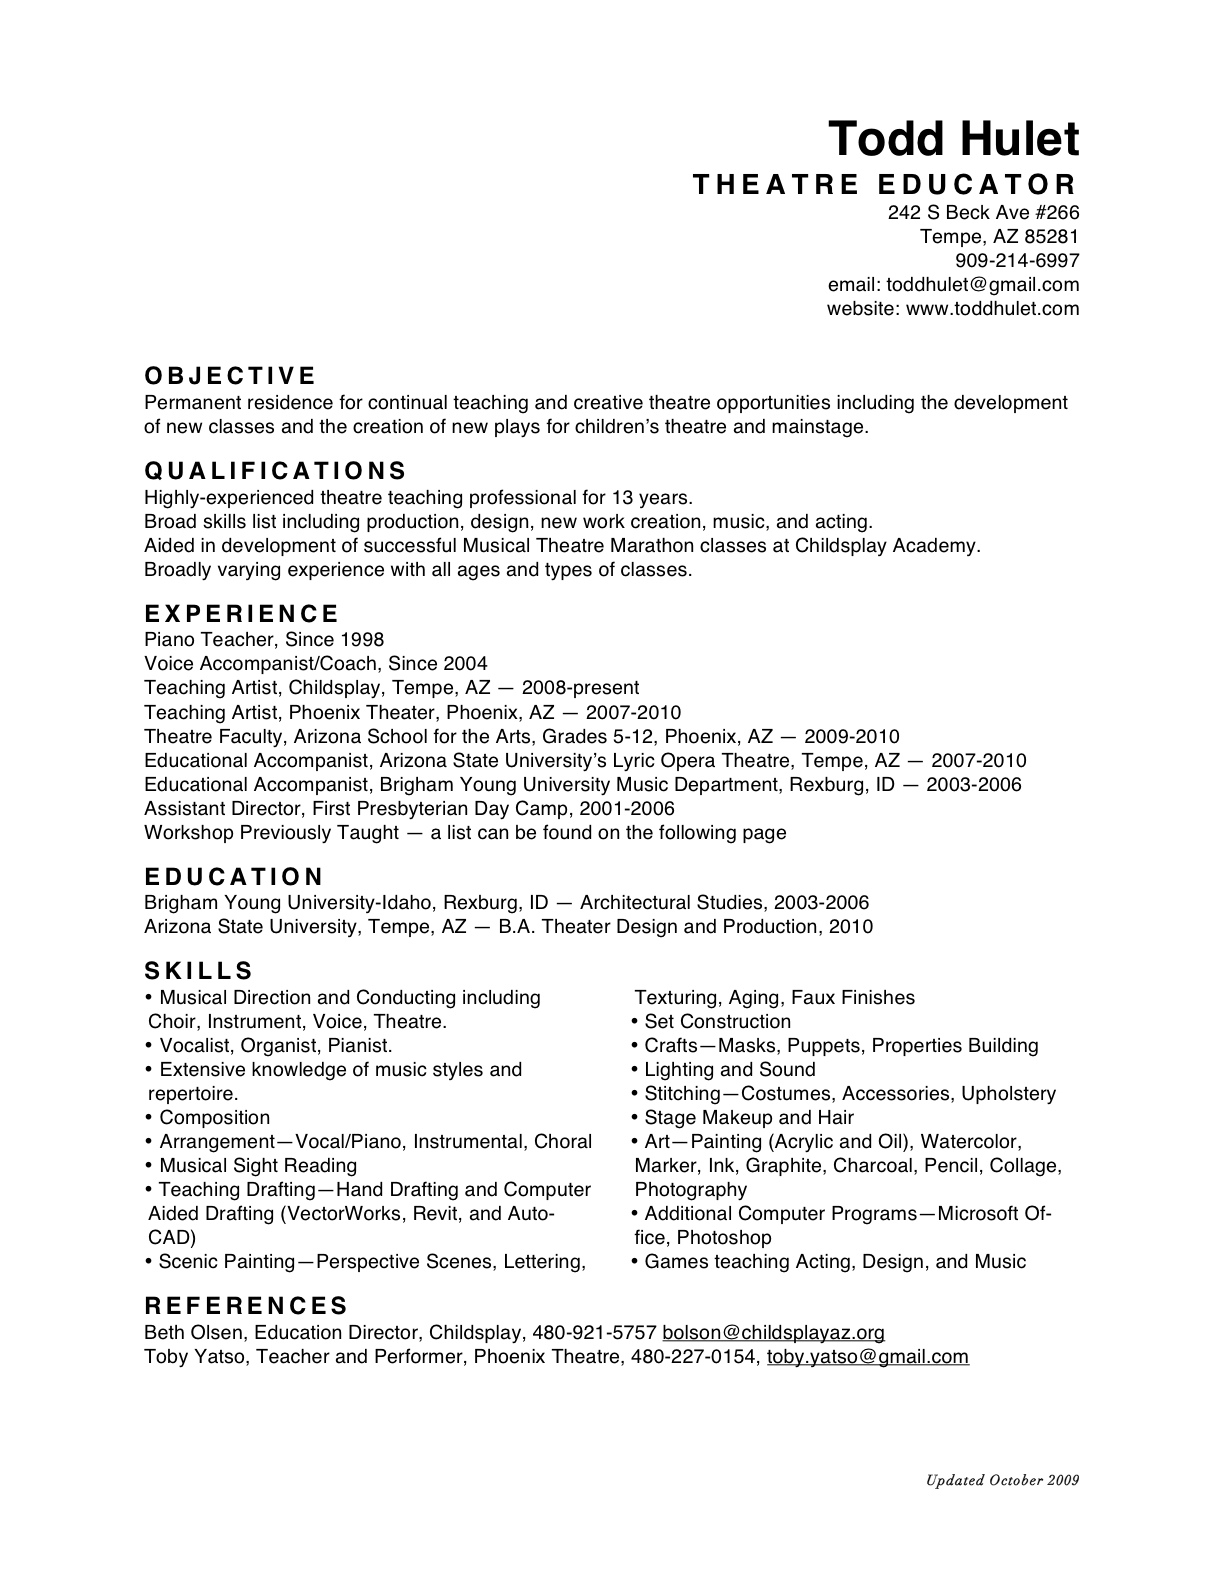 list education on resume